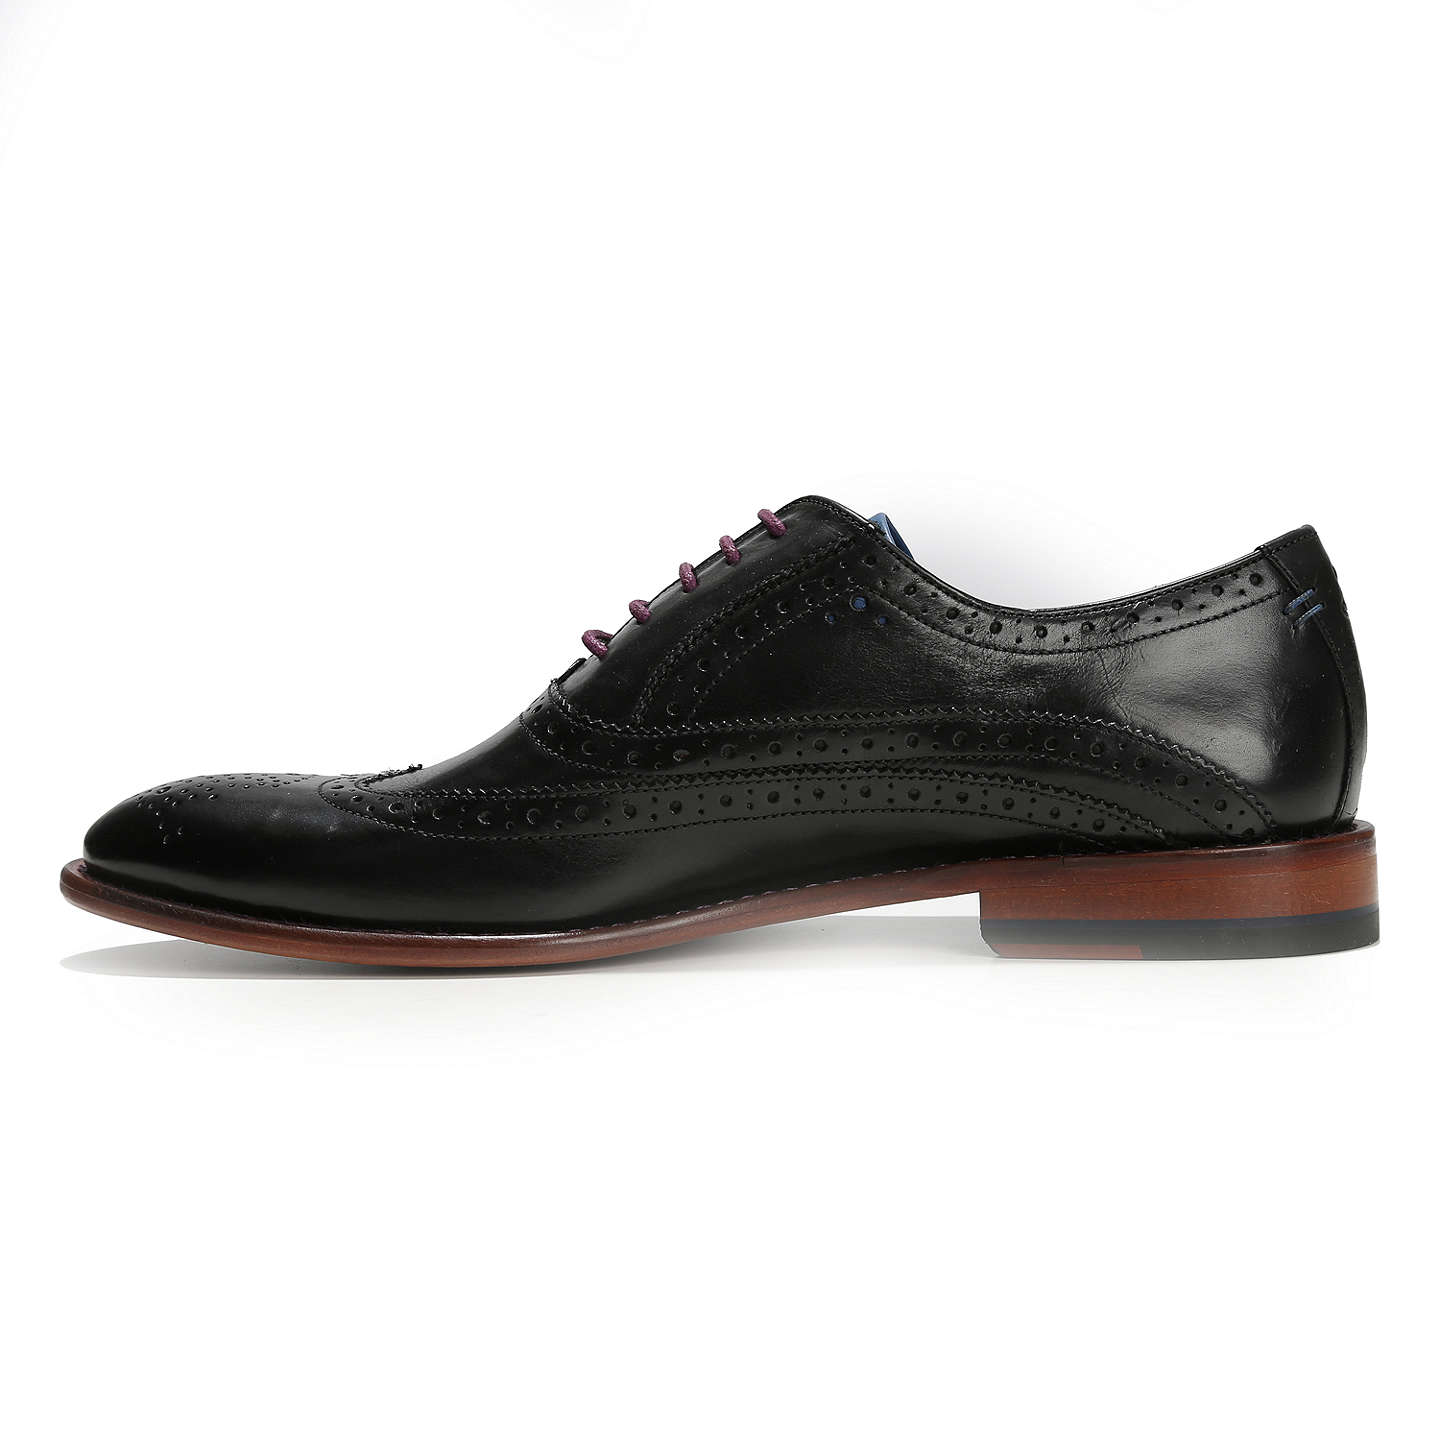 BuyOliver Sweeney Fellbeck Leather Lace-Up Brogues, Black, 7 Online at johnlewis.com